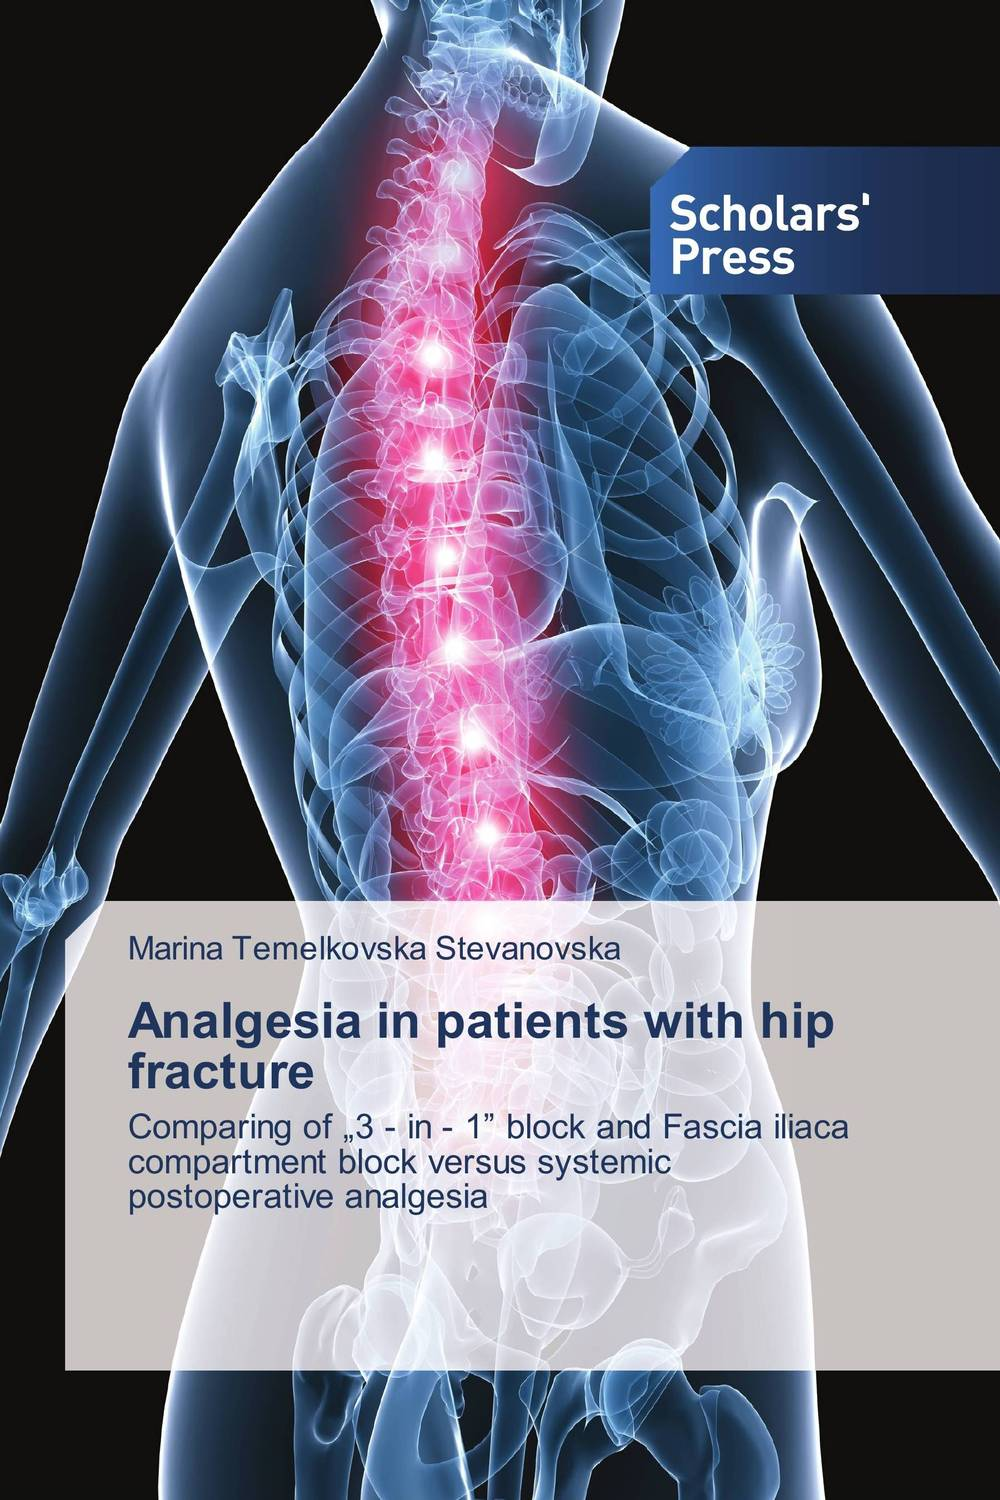 Analgesia in patients with hip fracture analgesia in patients with hip fracture